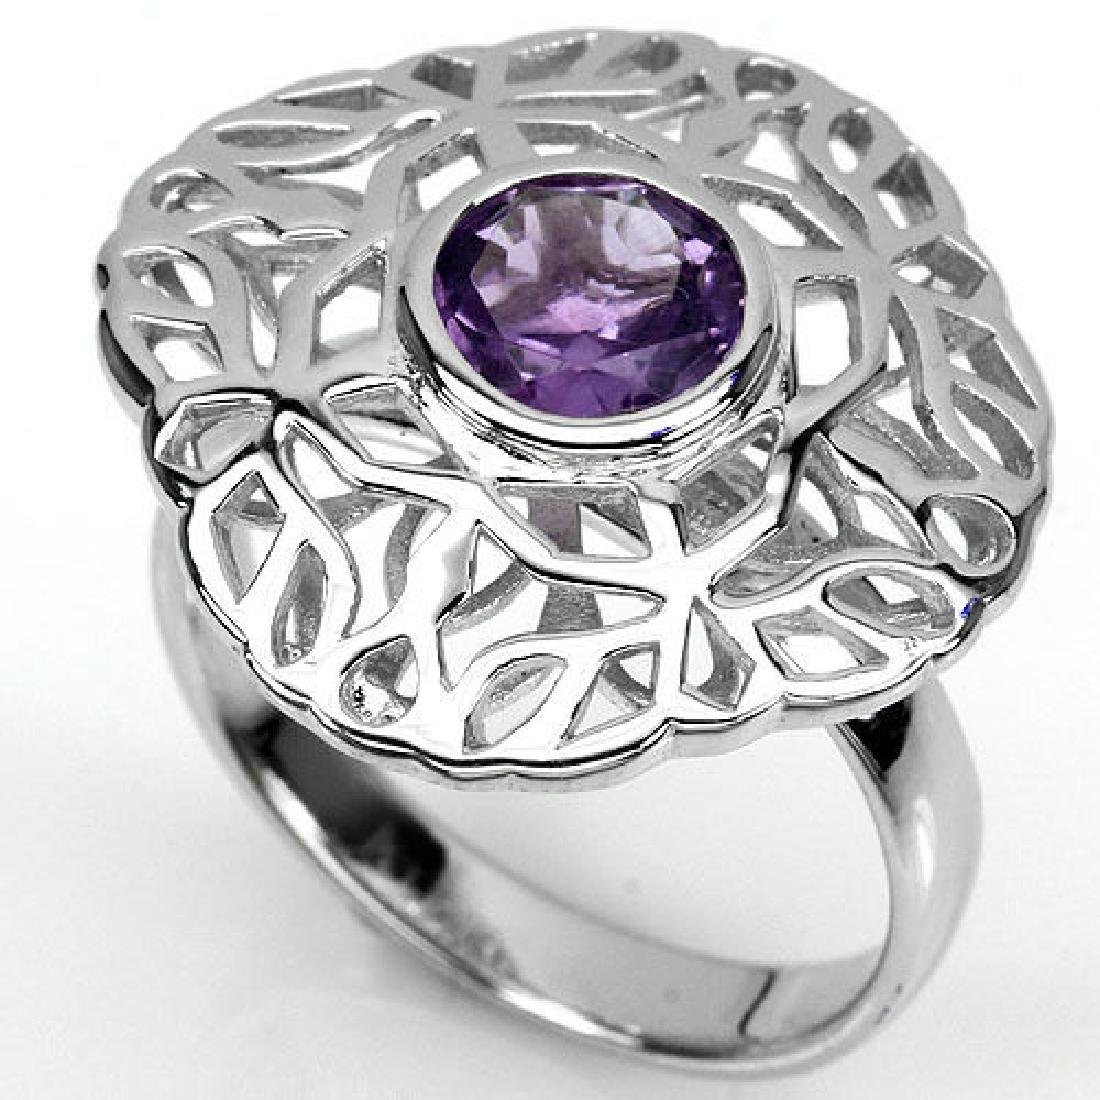 925 Sterling silver Amethyst Ring Size N.5 (US 7) - 2